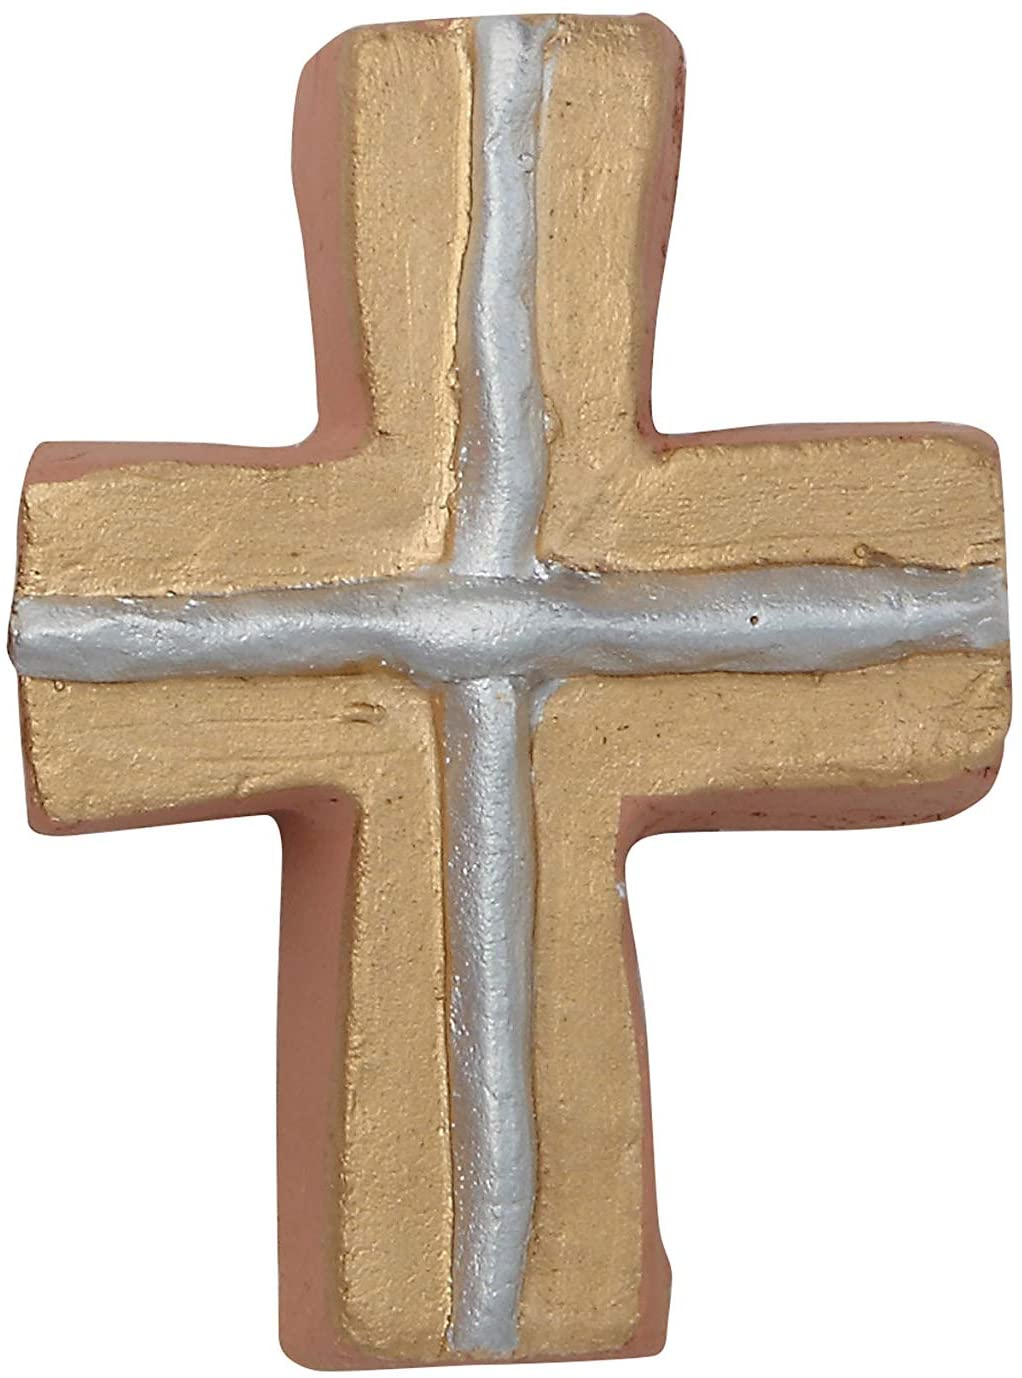 Terra-Cotta Cross